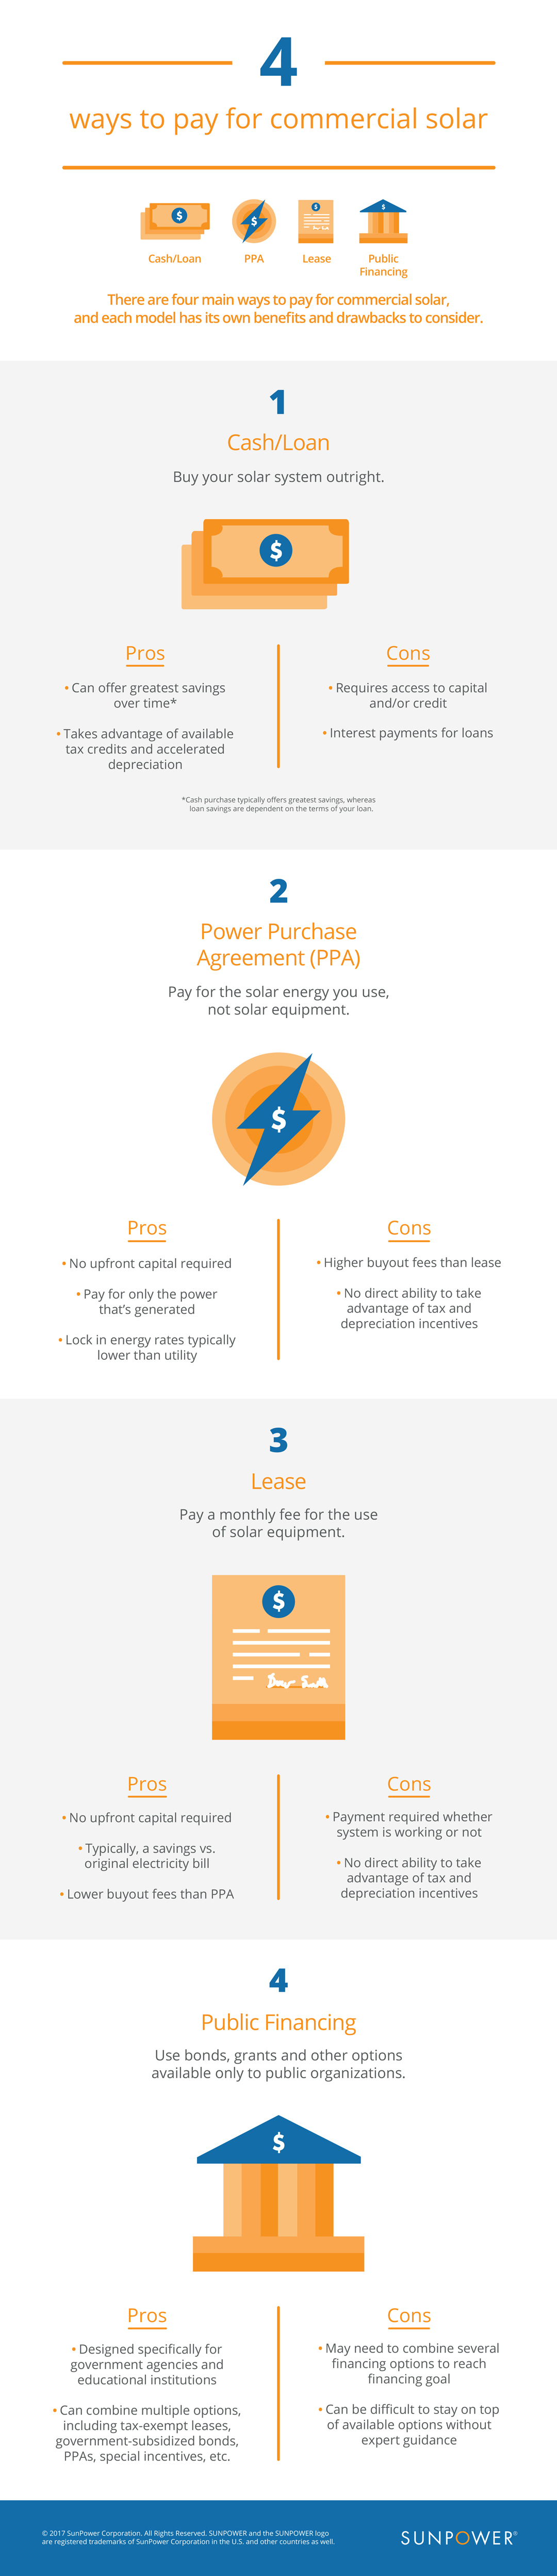 Ways to pay for commercial solar infographic